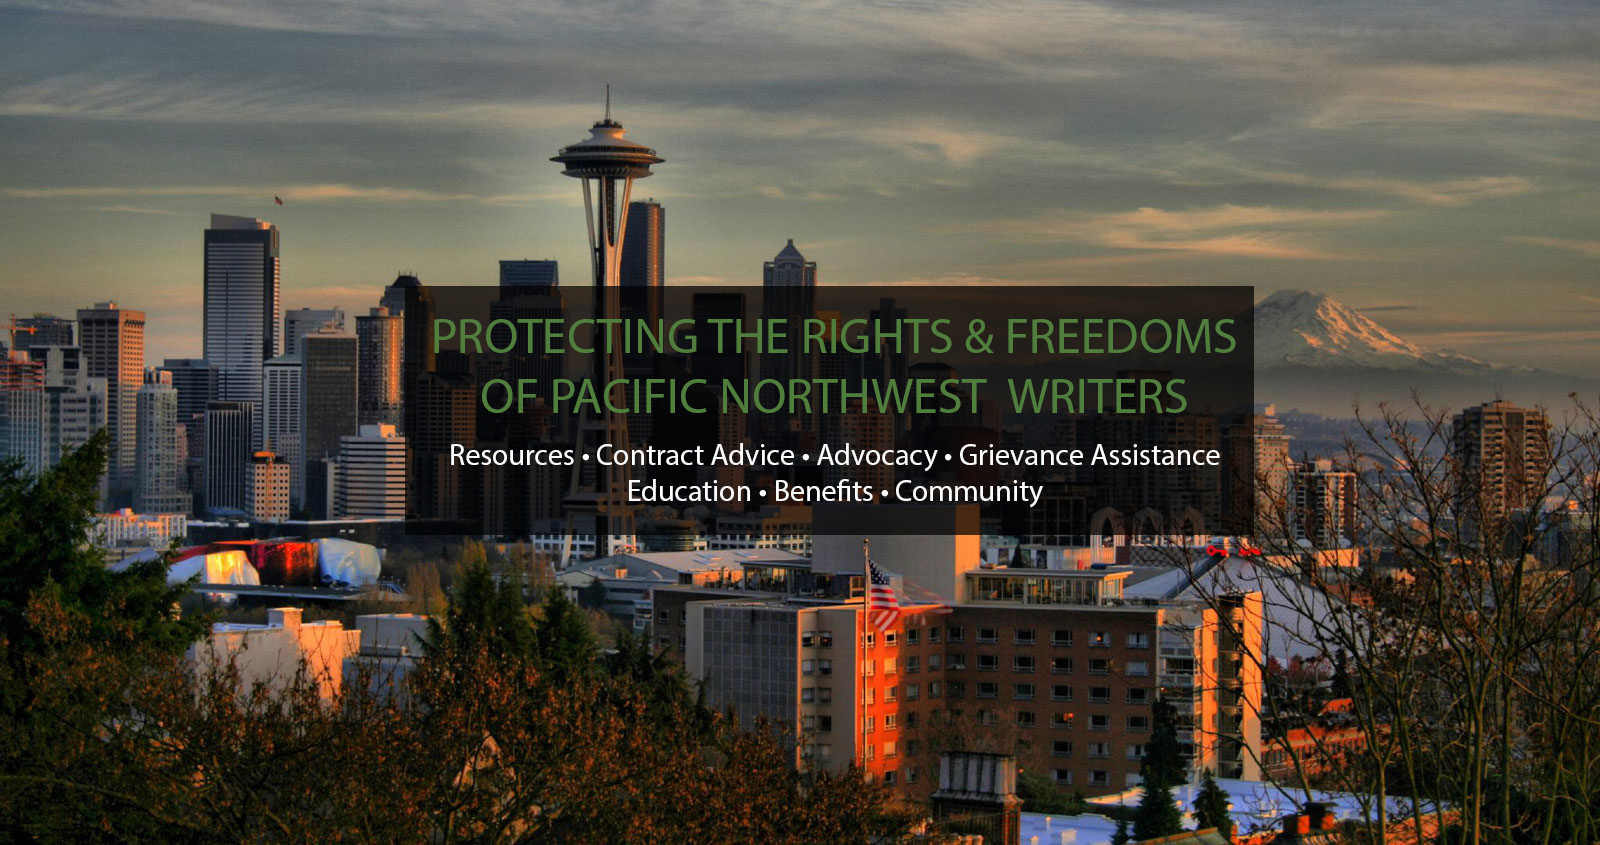 pacific northwest essays Deforestation of the pacific northwest one of the most controversial areas associated with the global problem of deforestation is the pacific northwest of the us.